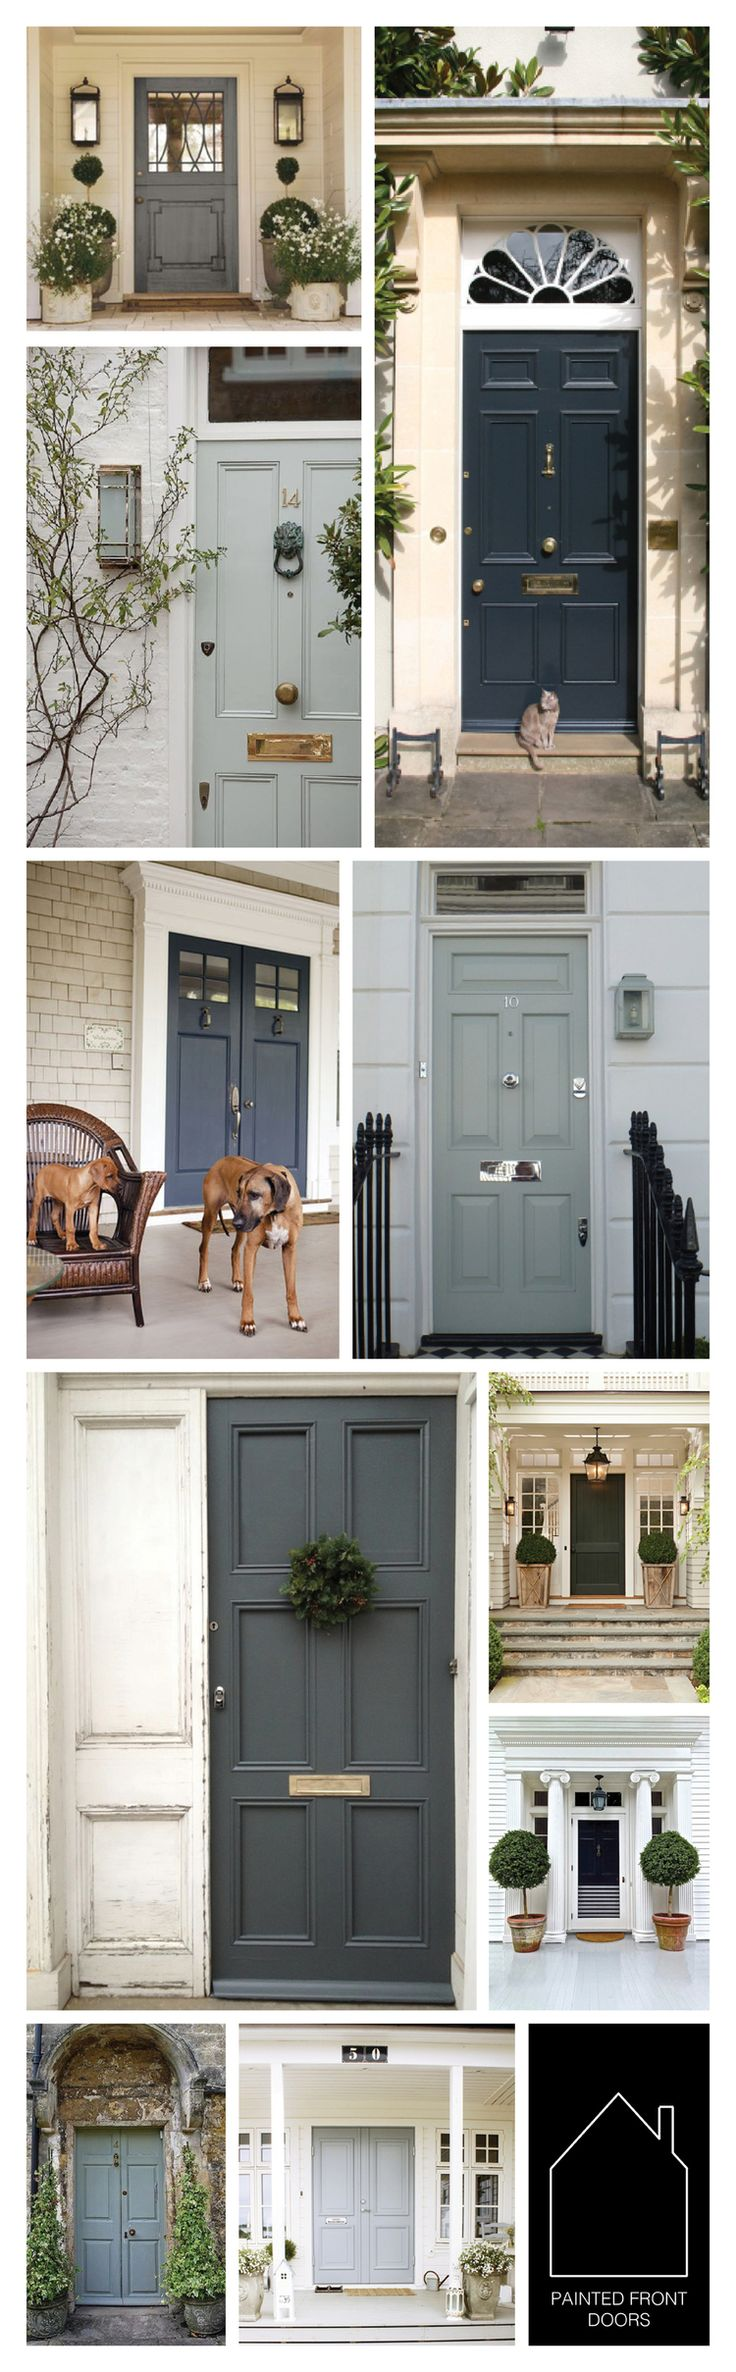 from top left - via Leah Richardson - via Farrow & Ball - via London Front Door - via Houzz - via London Front Door - via The Creative Exchange - design by Leanne Thornton - home of Aerin Lauder via Quintessence -  source unknown - via Faith Hope Love